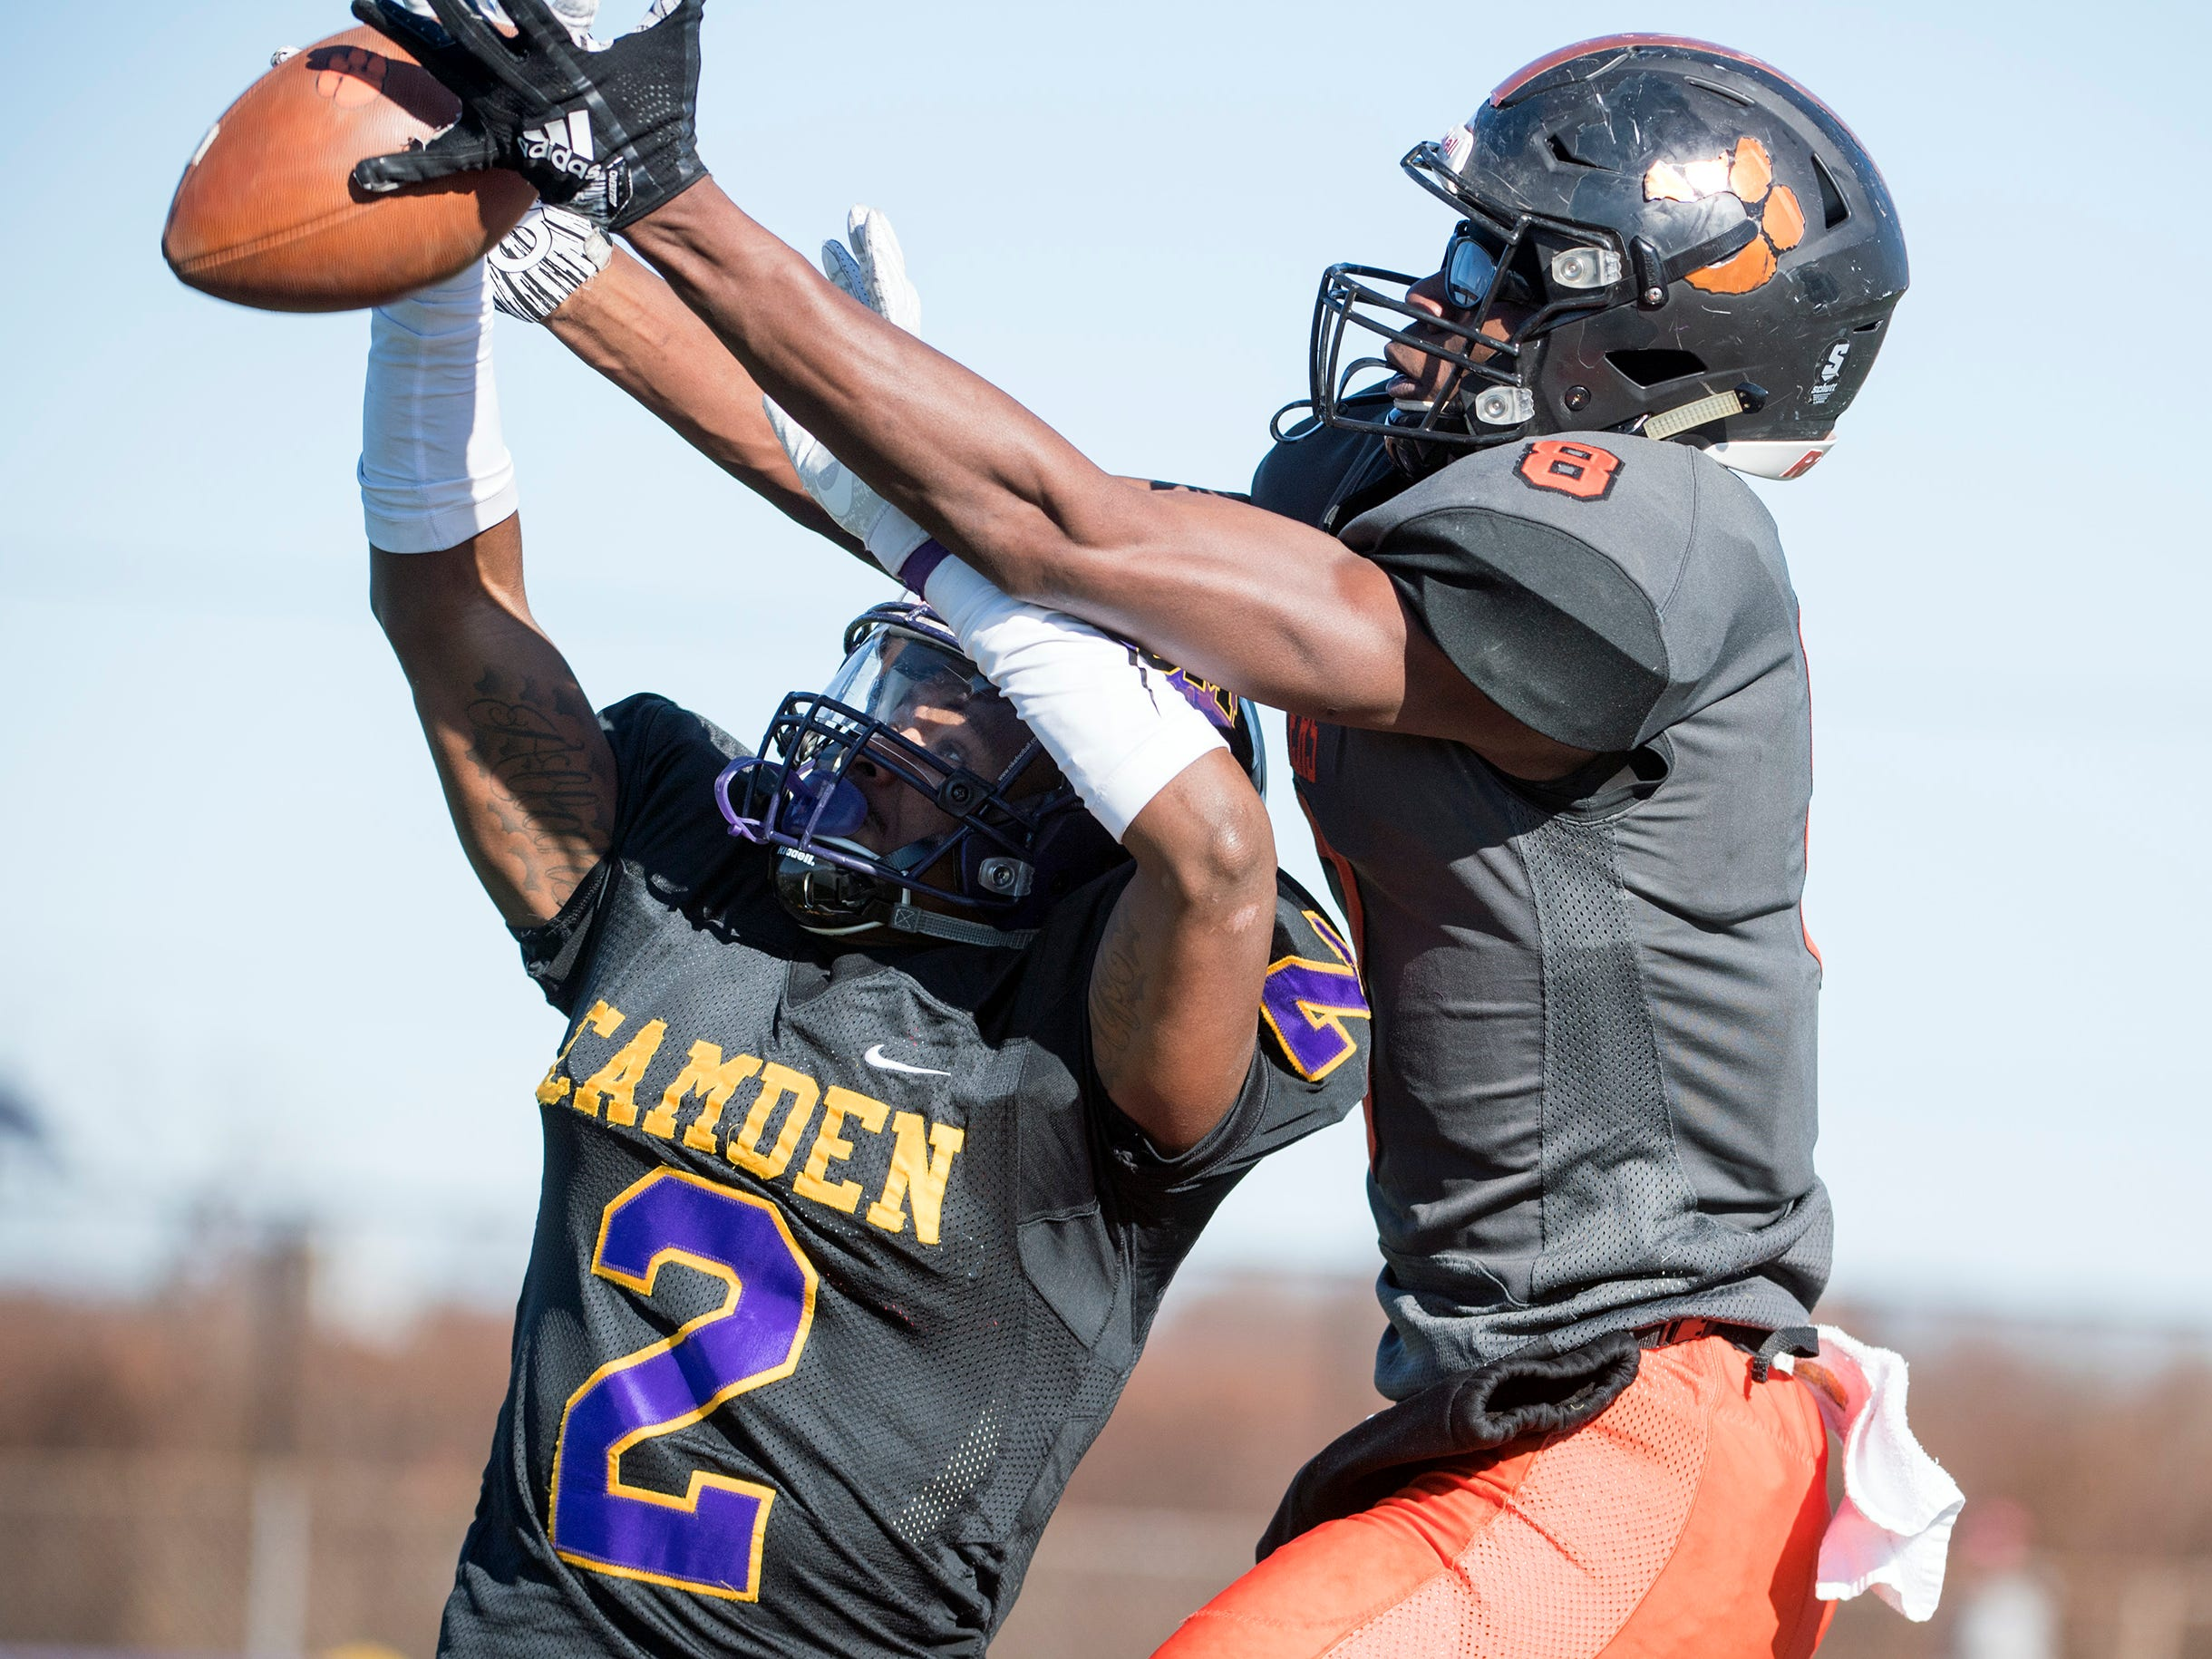 Camden's Donald Williams (2) and Woodrow Wilson's Stanley King (8) battle for a pass that ultimately falls incomplete during an annual Camden-Woodrow Wilson Thanksgiving game Thursday, Nov. 22, 2018 in Camden, N.J. Camden won 39-28.